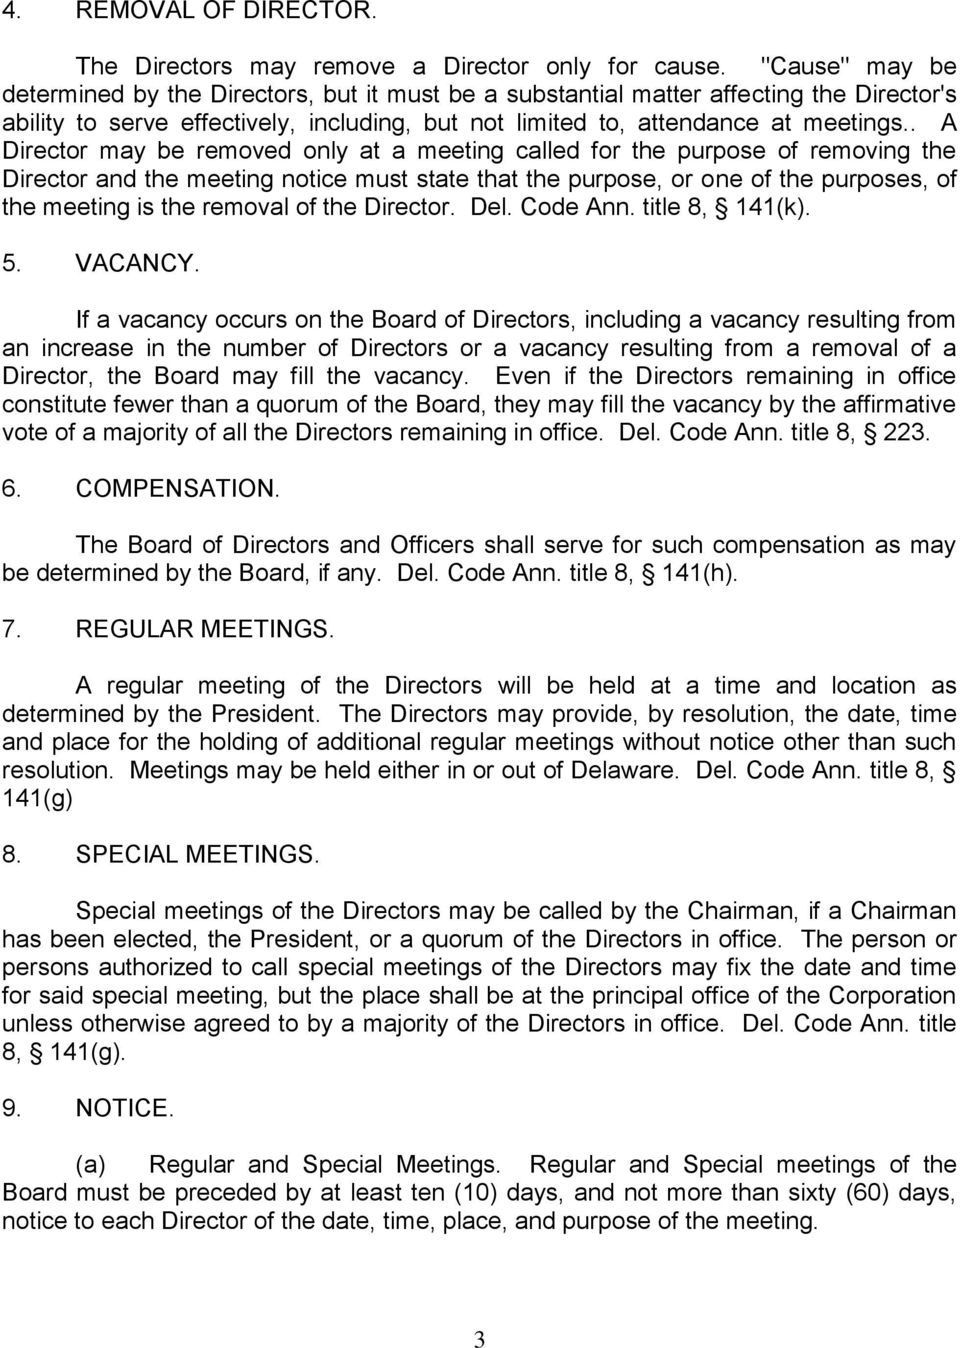 . A Director may be removed only at a meeting called for the purpose of removing the Director and the meeting notice must state that the purpose, or one of the purposes, of the meeting is the removal